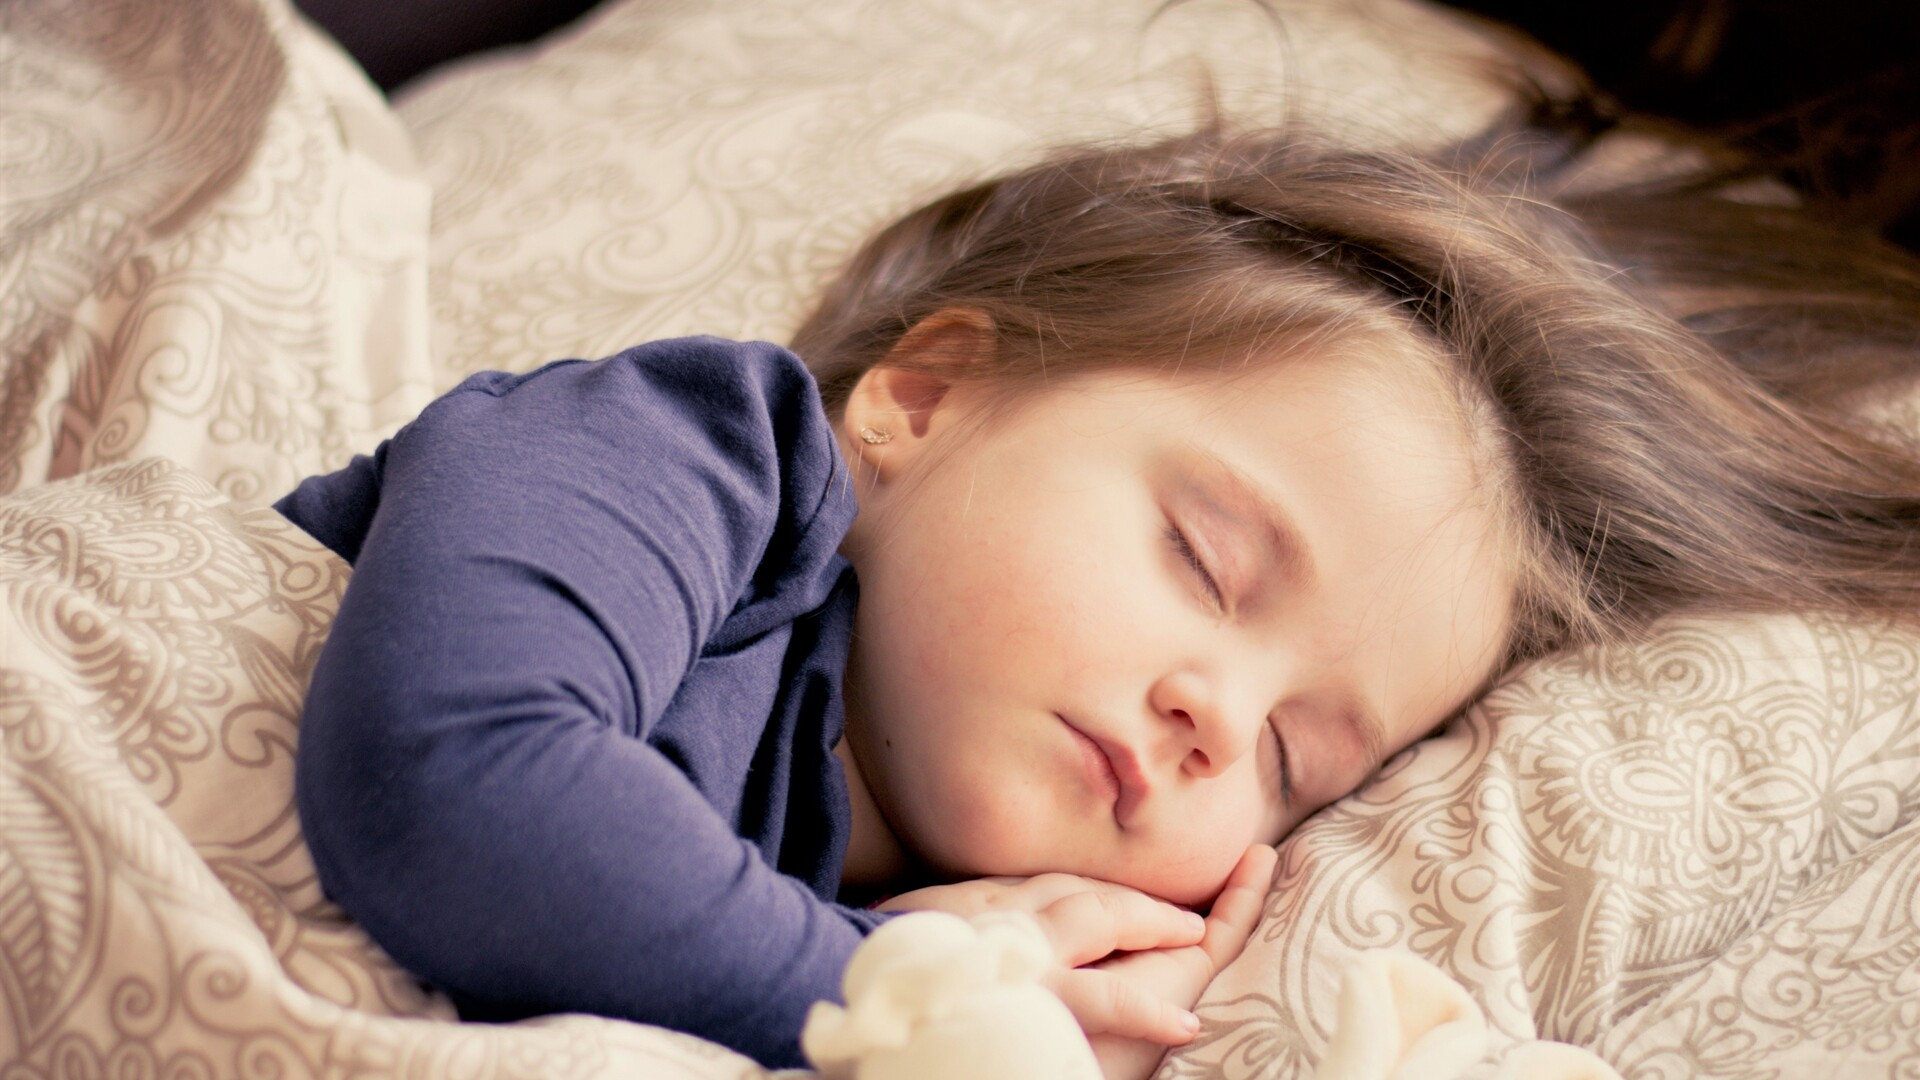 1920x1080 Cute Child Sleeping Laptop Full Hd 1080p Hd 4k Wallpapers Images Backgrounds Photos And Pictures